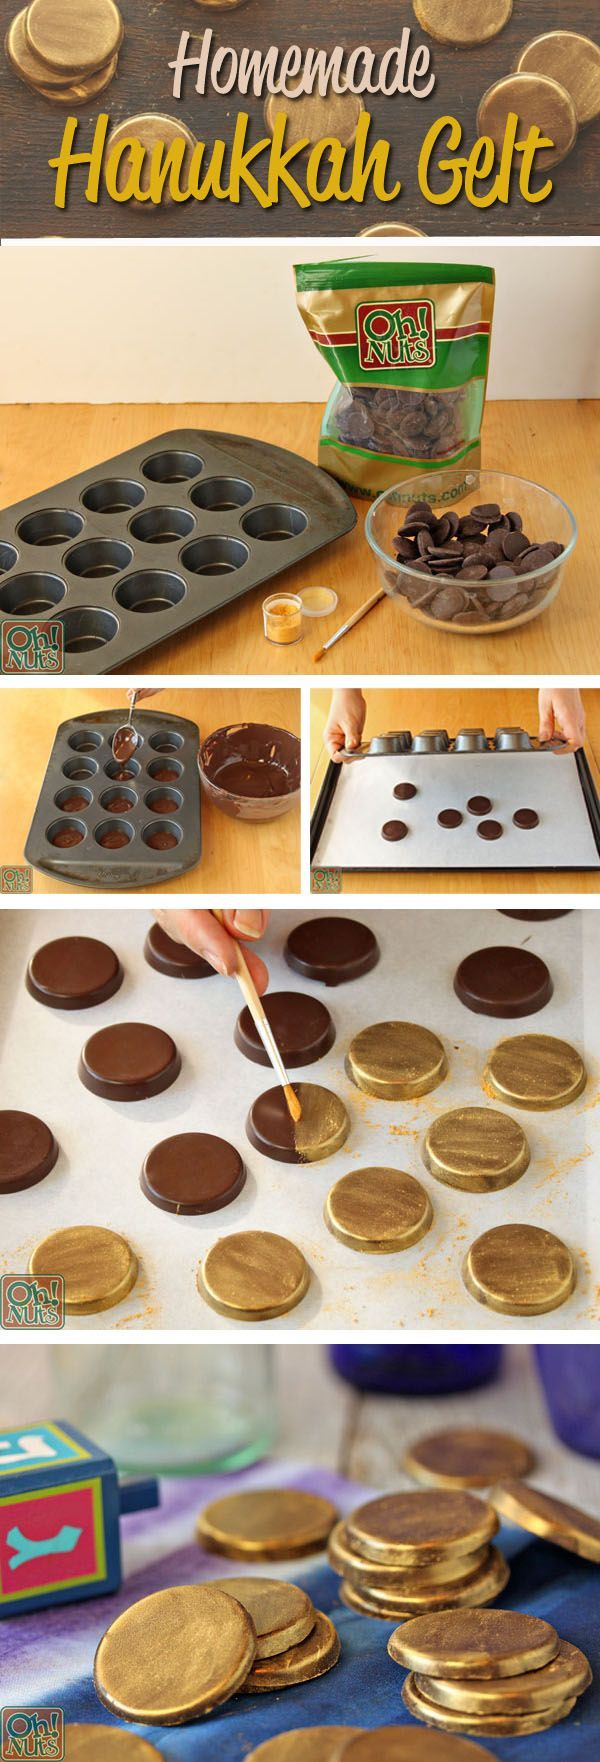 Next year. Homemade Hanukkah Gelt by Oh Nuts!  Hanukkah gelt is a Jewish tradition where children receive gelt (the Yiddish word for money) during the festival of lights!  This tradition has since been modernized, and now children typically receive gold coin chocolates as Hanukkah Gelt!